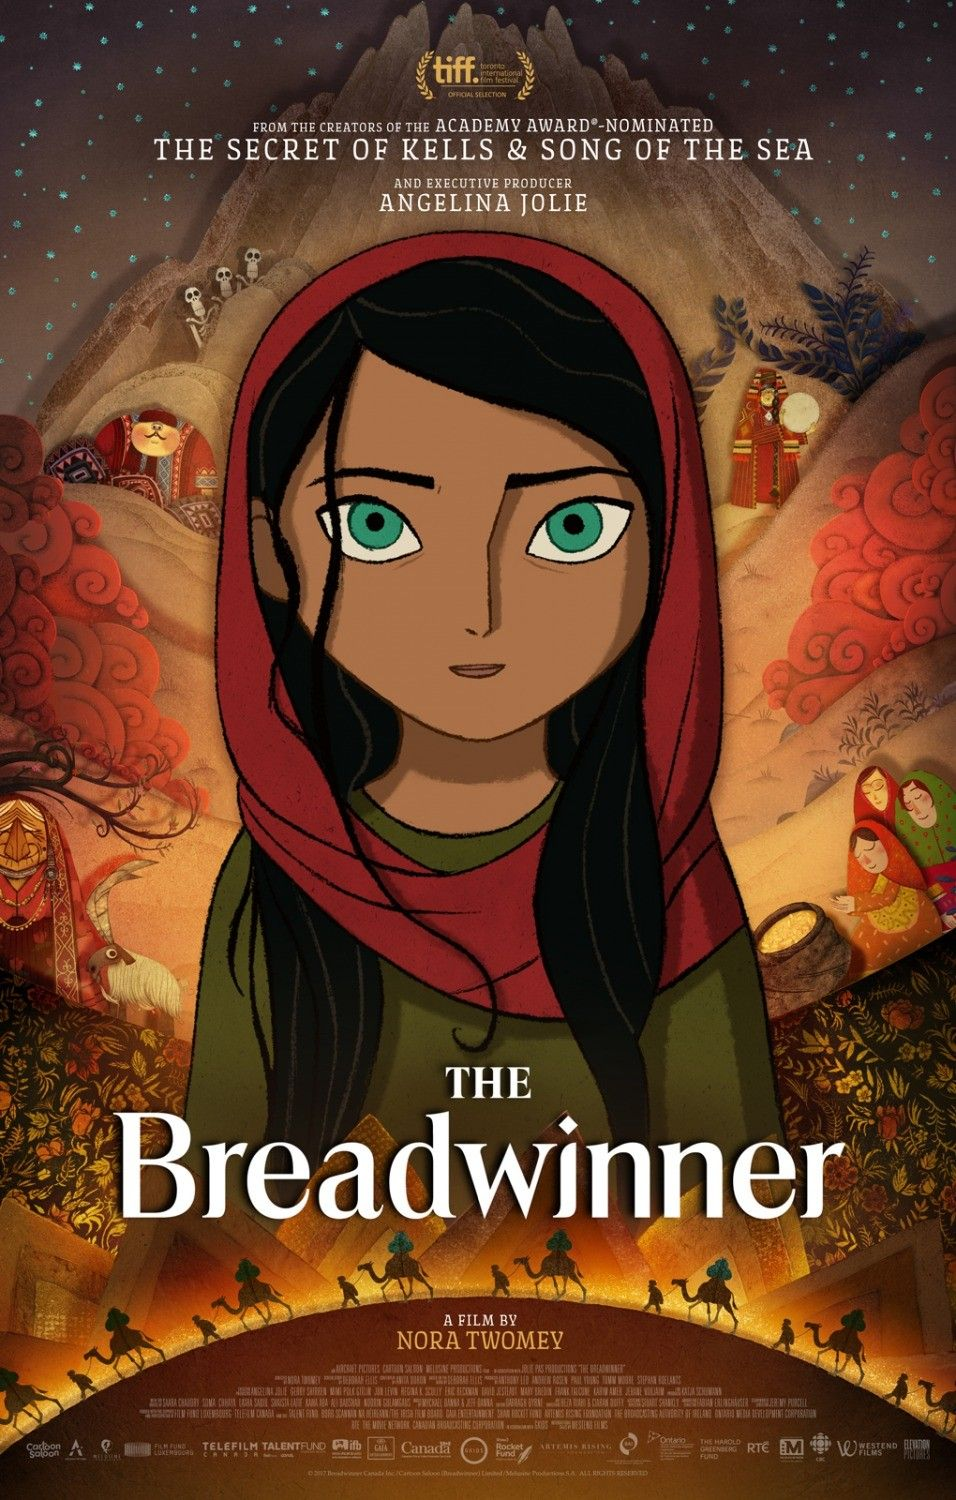 The Breadwinner | Free movies online, Full movies ...